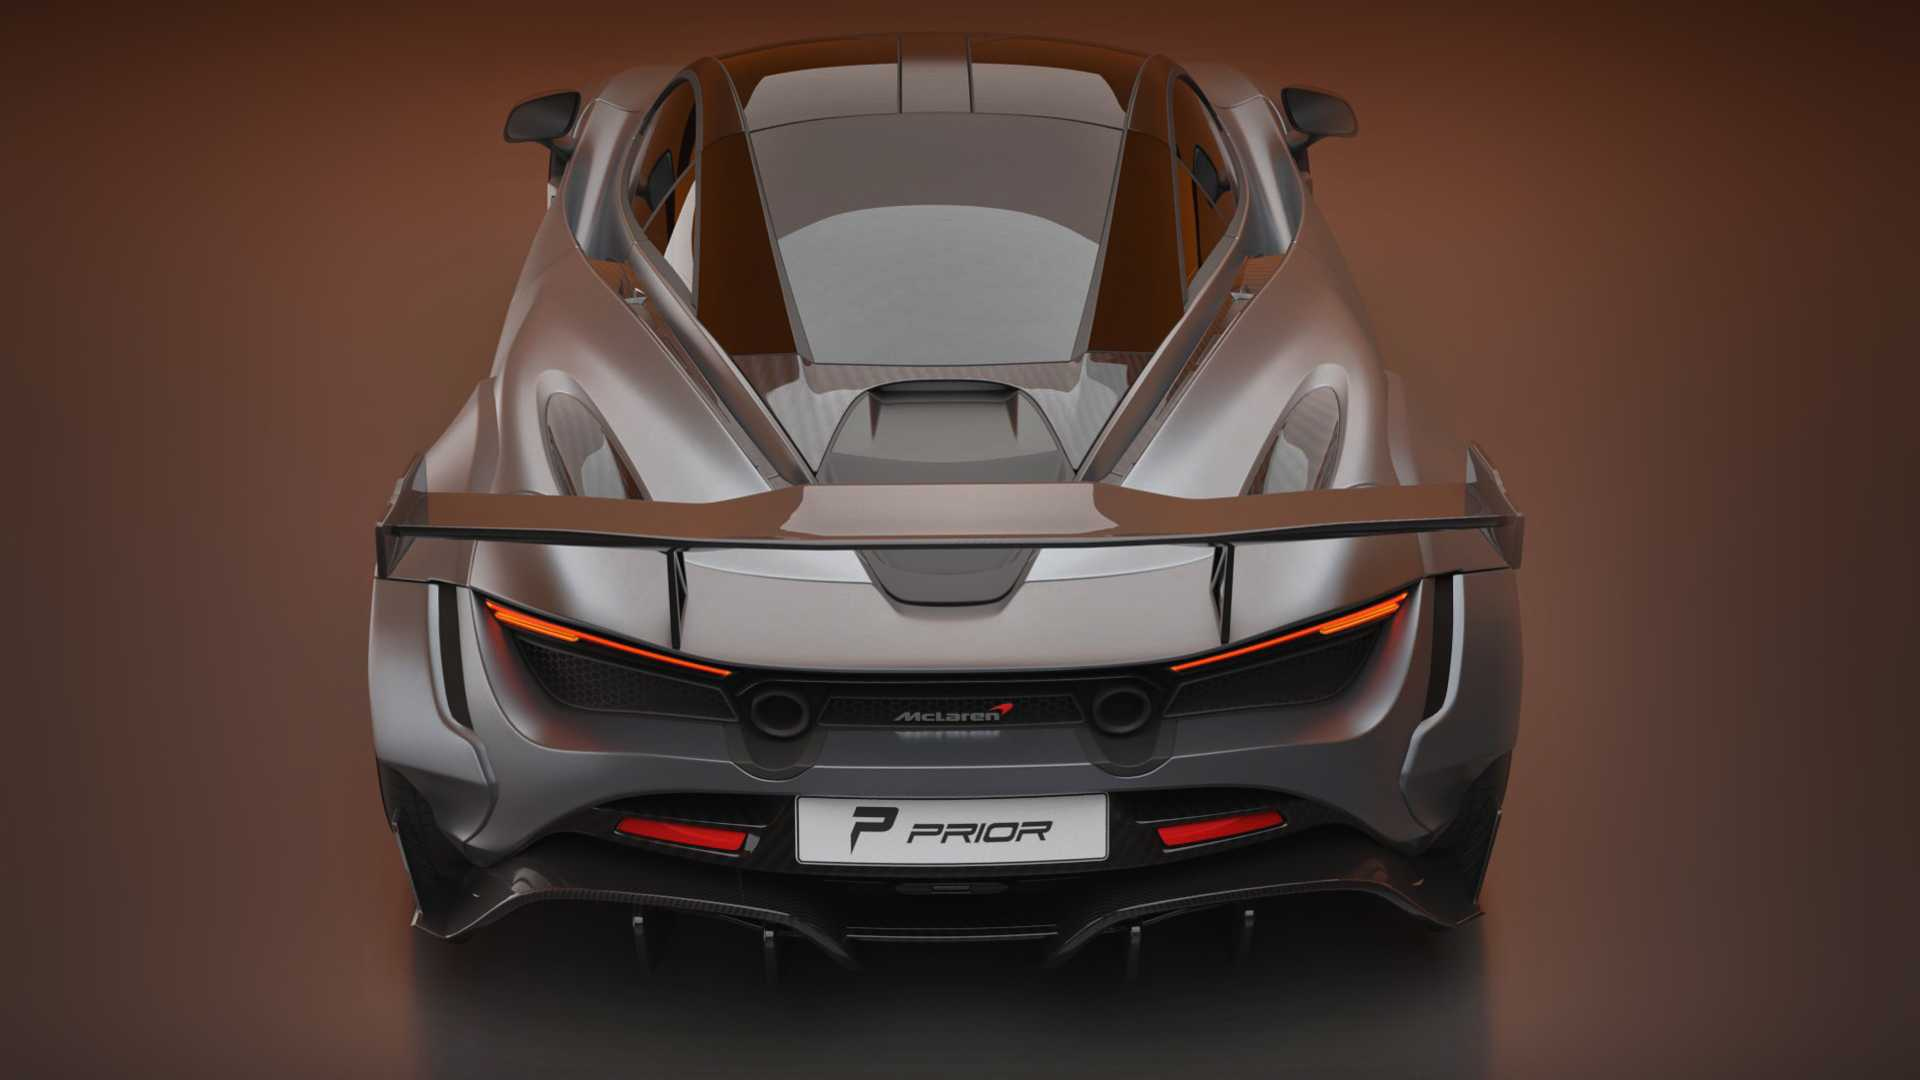 mclaren-720s-by-prior-design-7